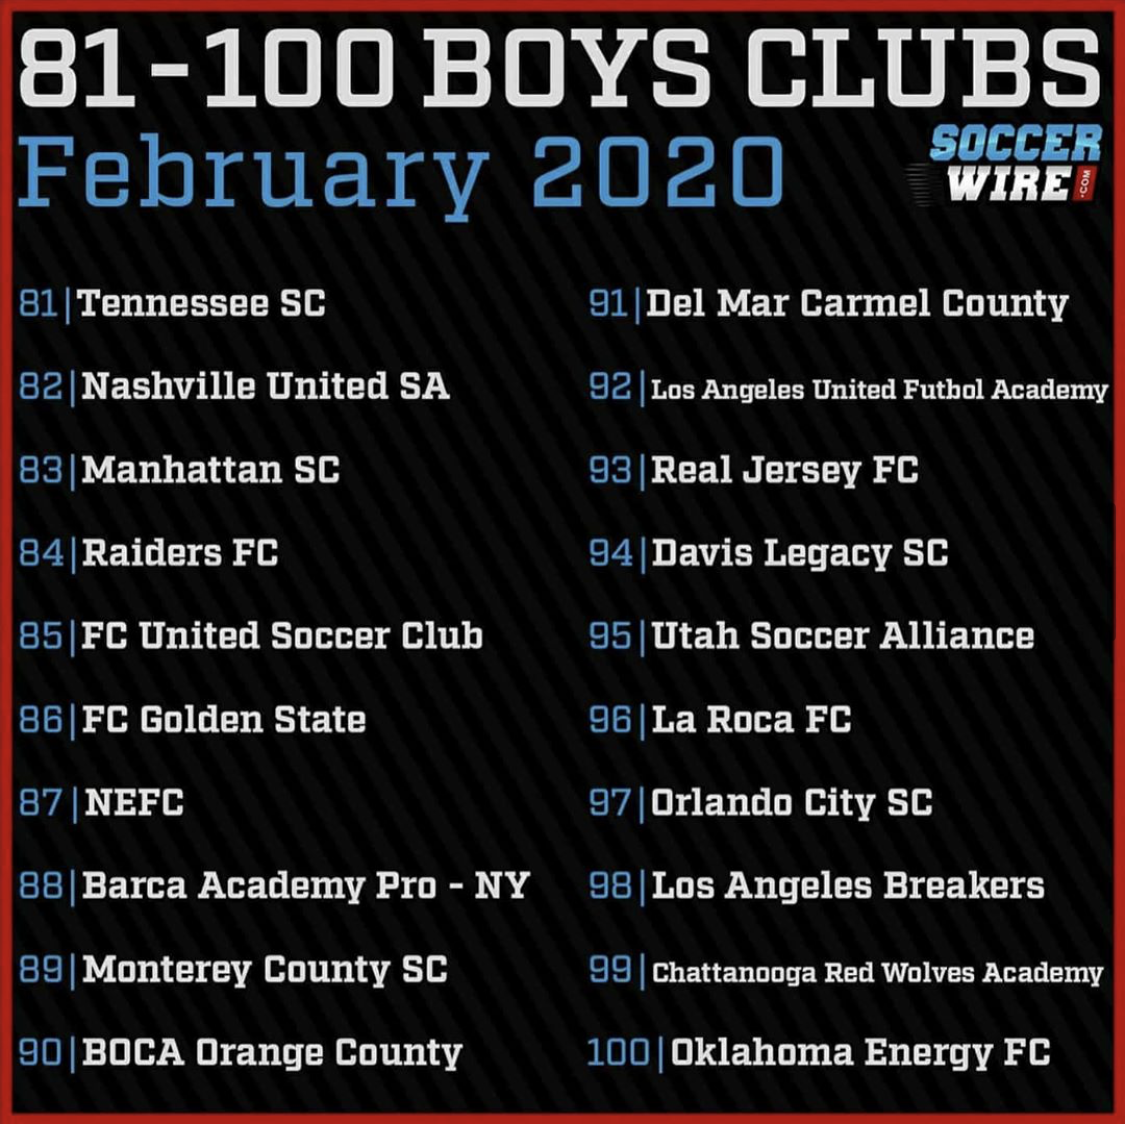 BOCA OC TOP 100 BOYS SOCCER CLUBS